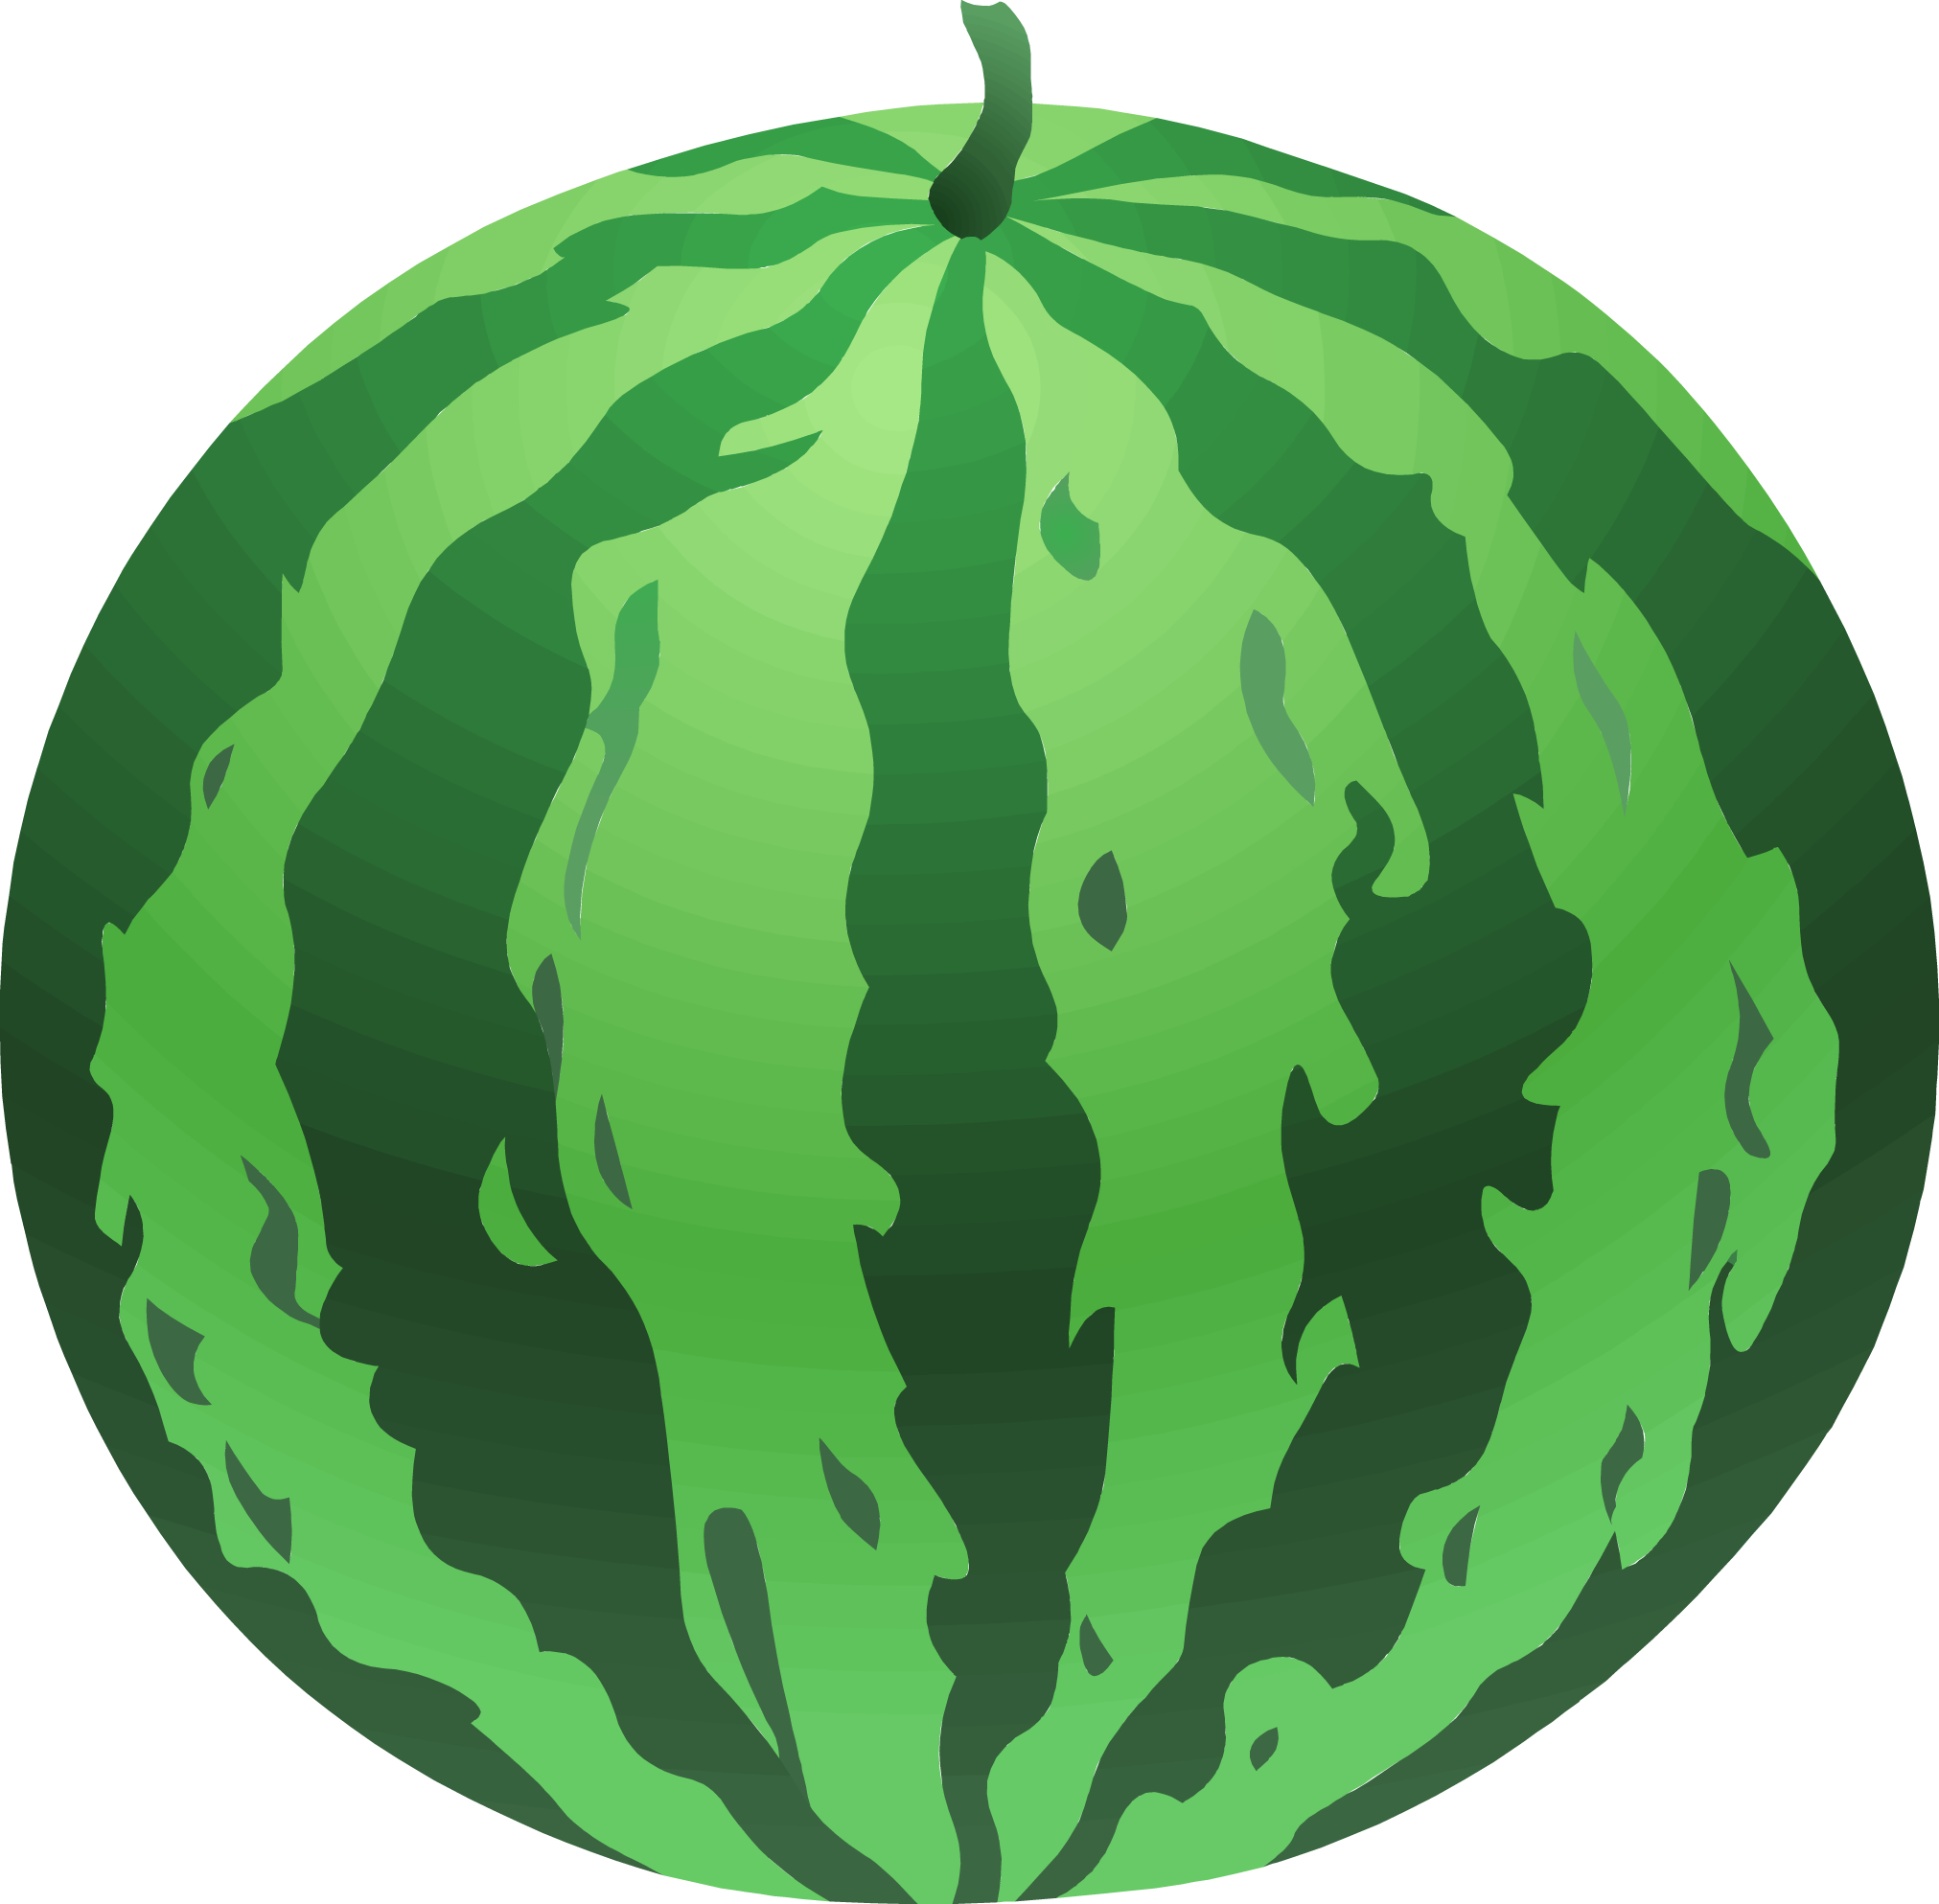 Download Wallpaper Image Category Watermelons